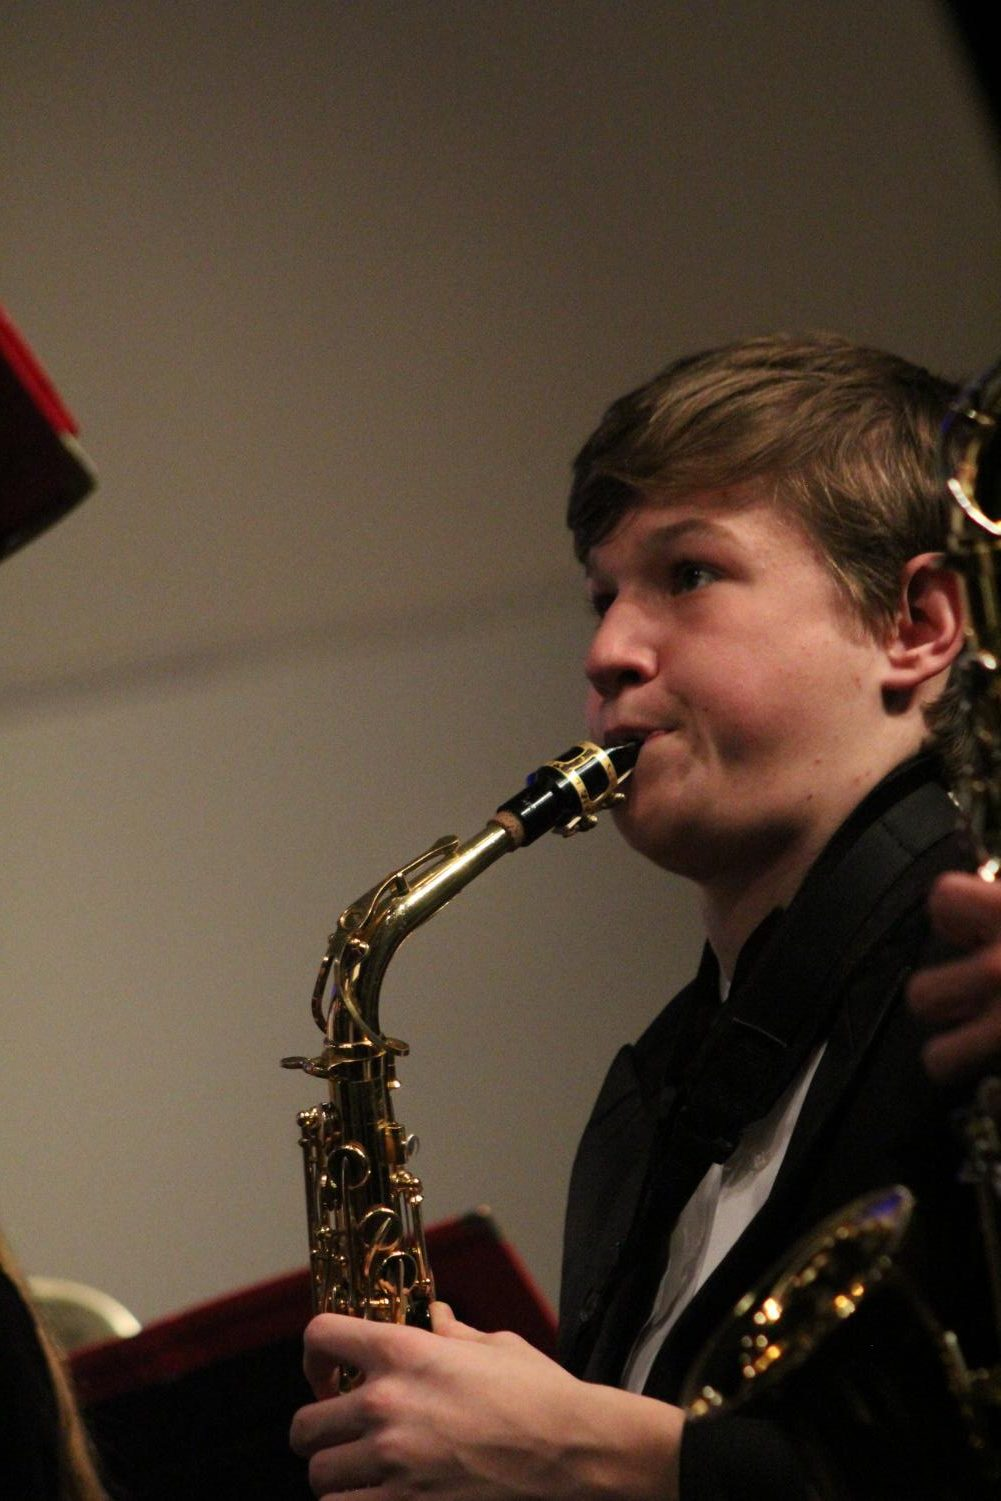 Paying+attention+to+his+conductor%2C+Ryan+Clutes%2C+freshman%2C+plays+his+saxophone+during+the+final+song+at+the+winter+band+concert+Feb.+28+